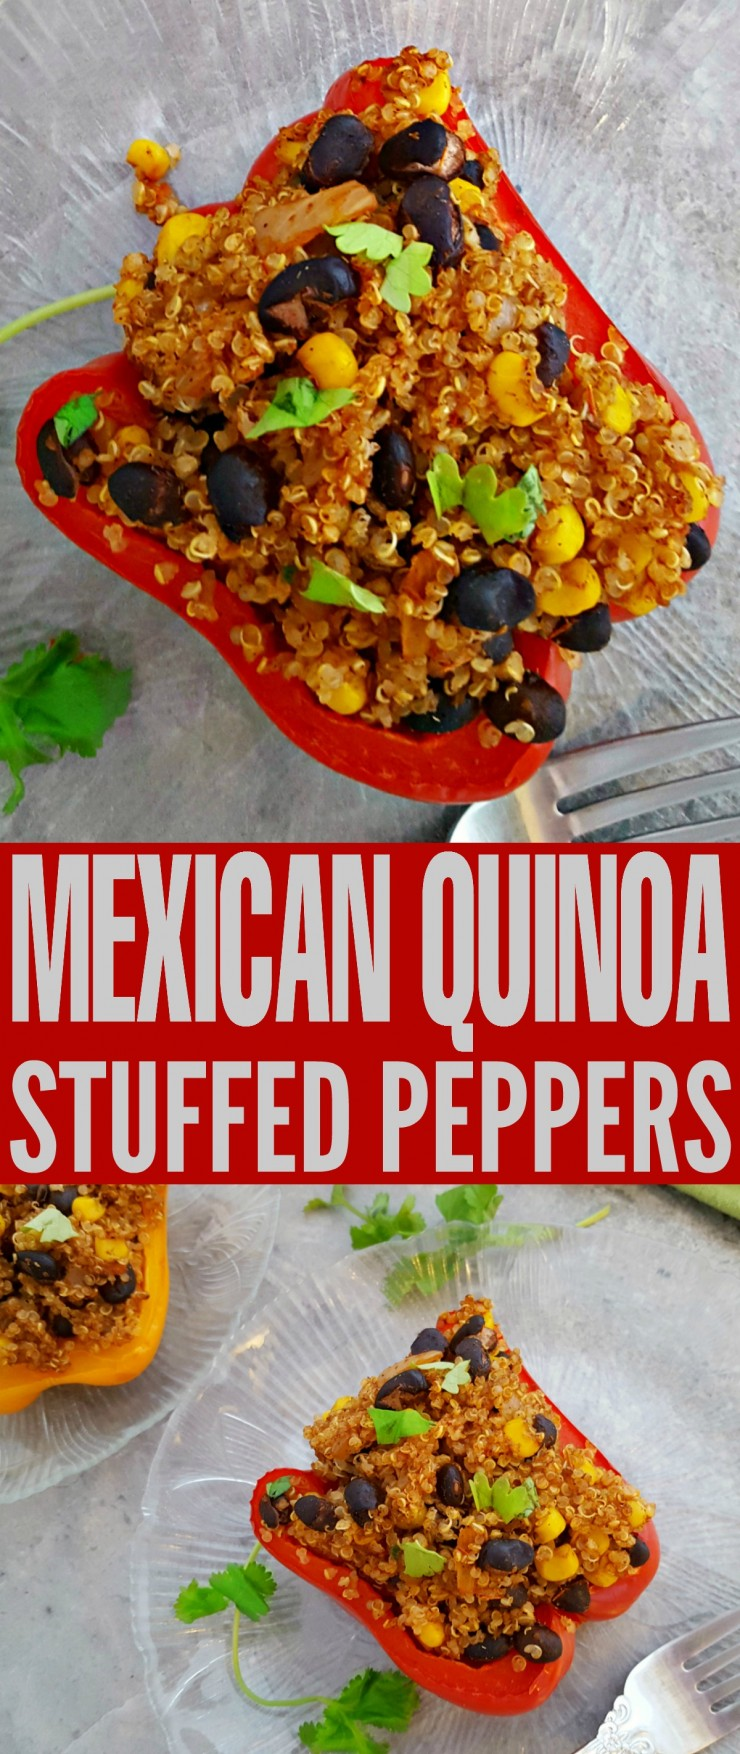 This recipe for Mexican Quinoa Stuffed Peppers is full of flavour and makes for a healthy family meal. This is a great Mexican inspired dish.